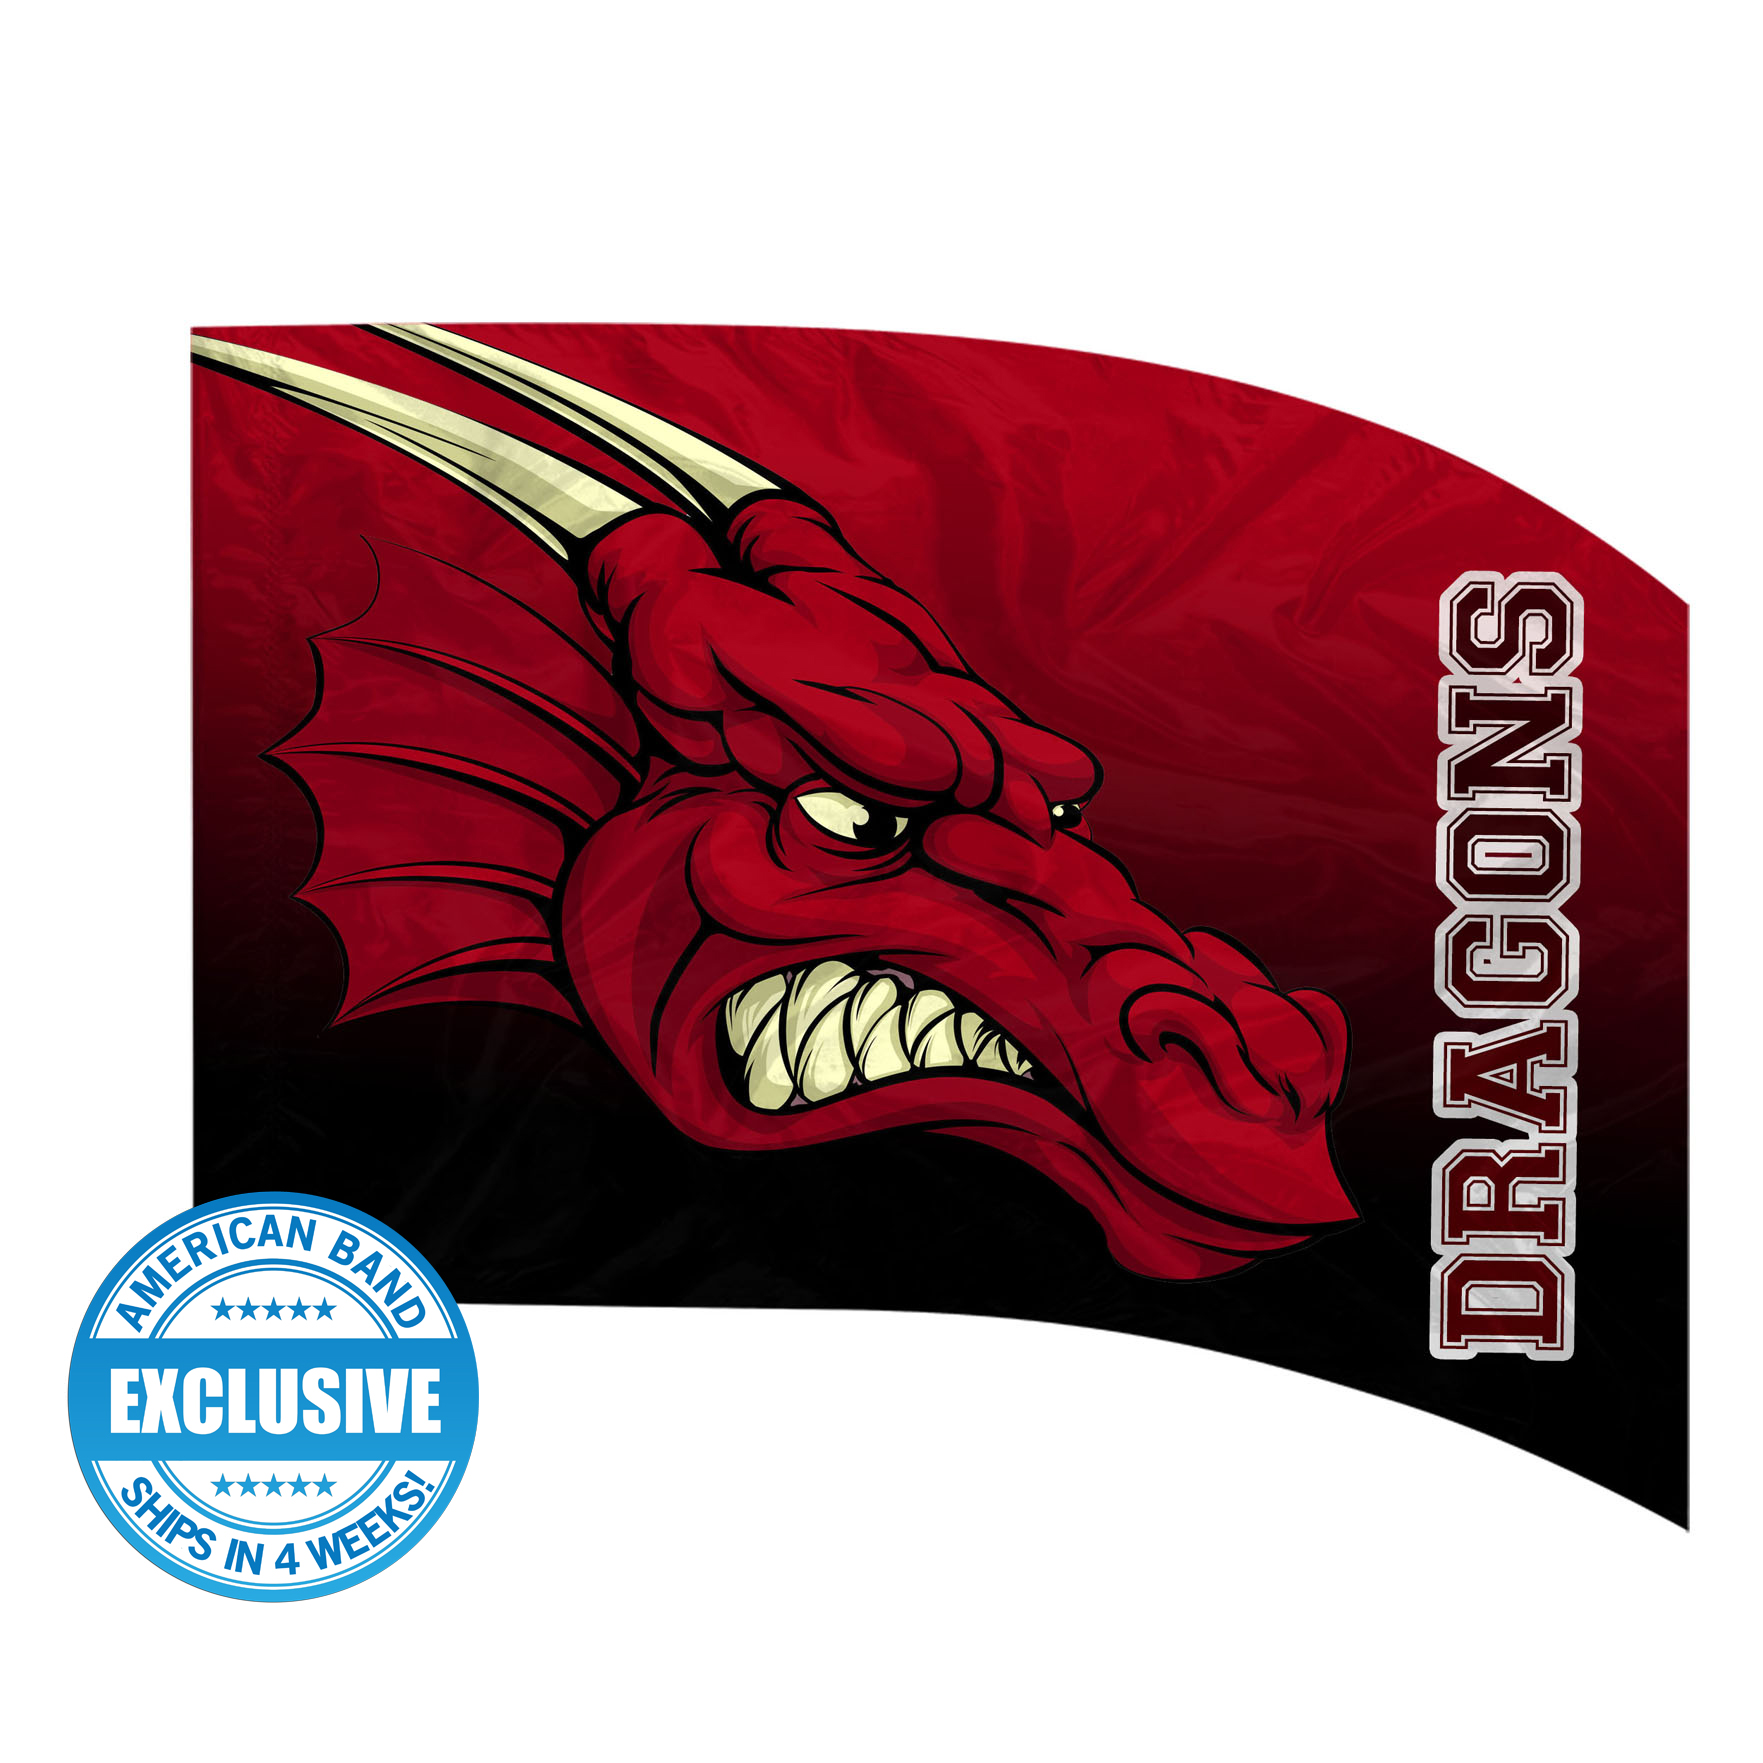 Made-to-Order Digital Mascot Flags - Dragon